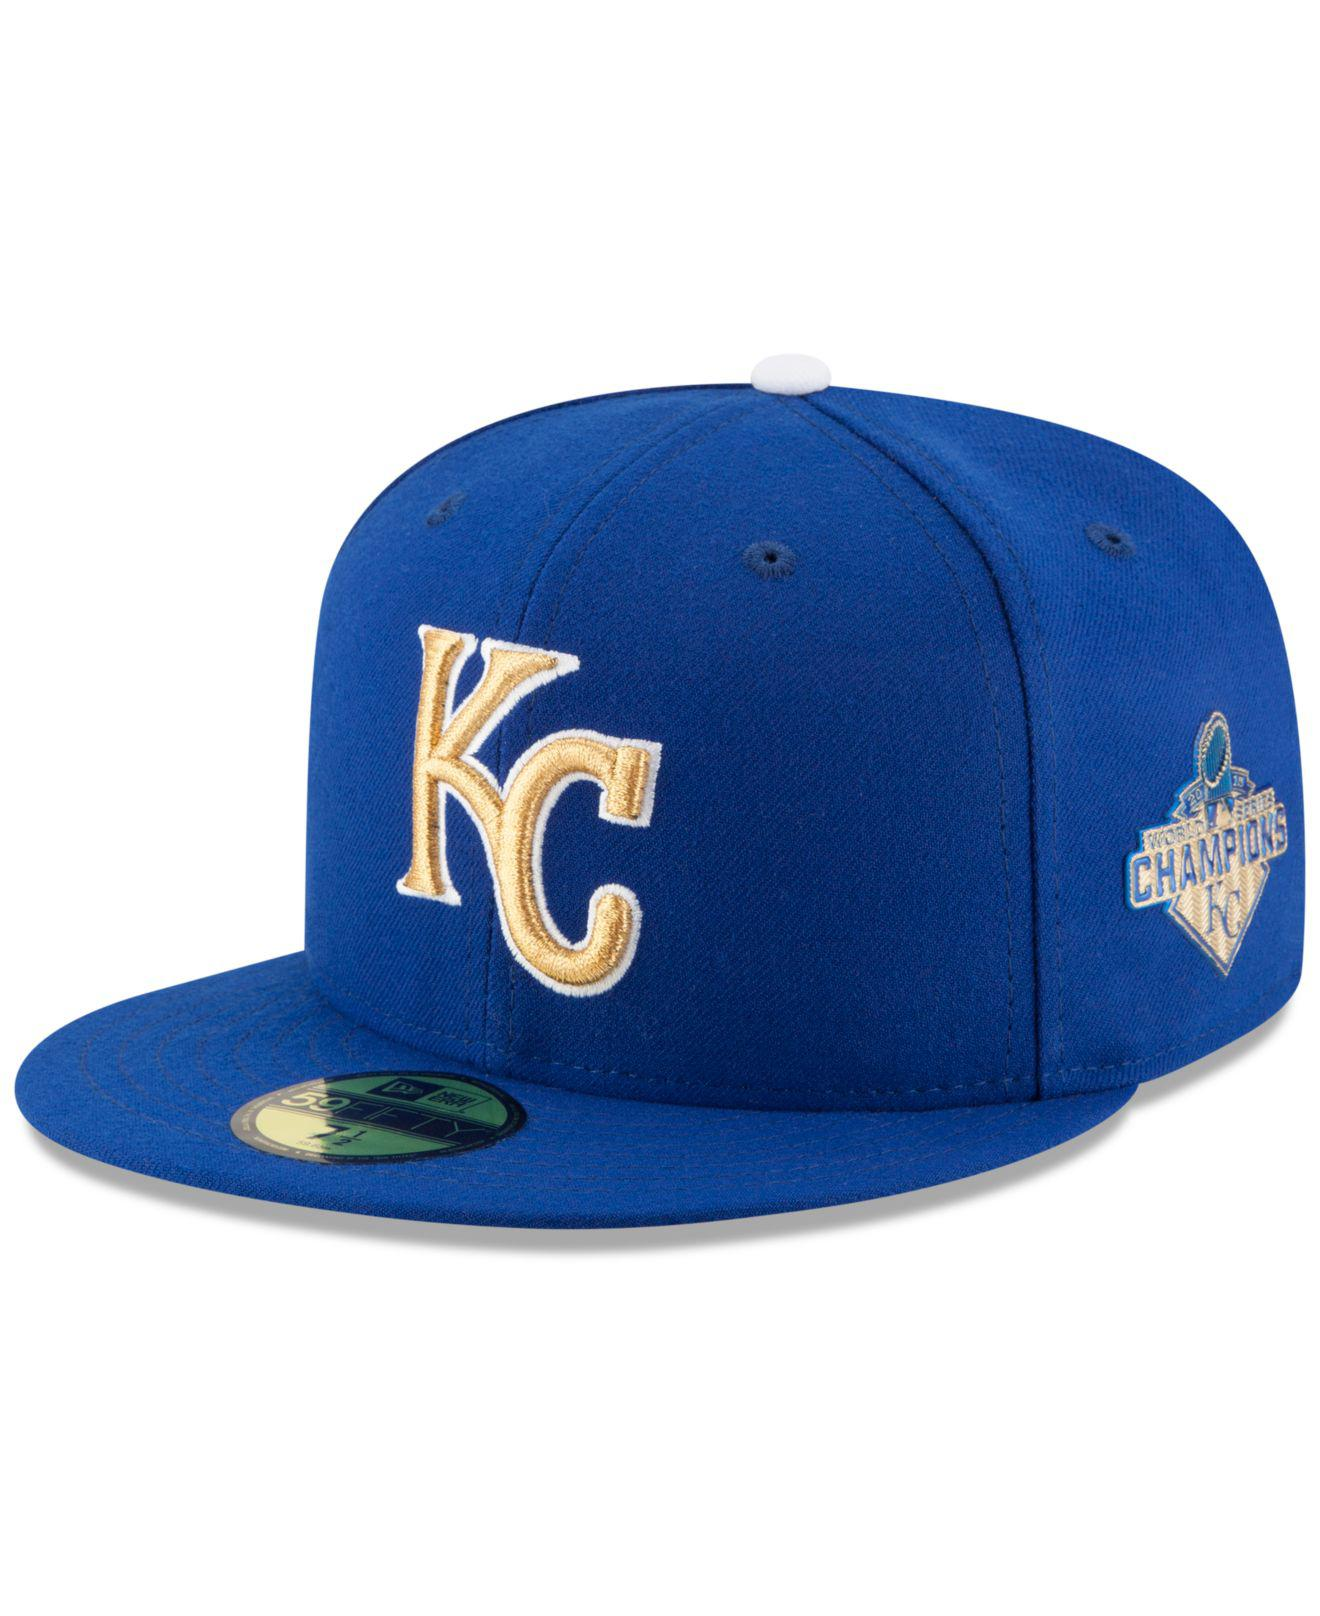 d1daecddbed Lyst - KTZ Kansas City Royals 2015 World Series Commemorative Gold ...